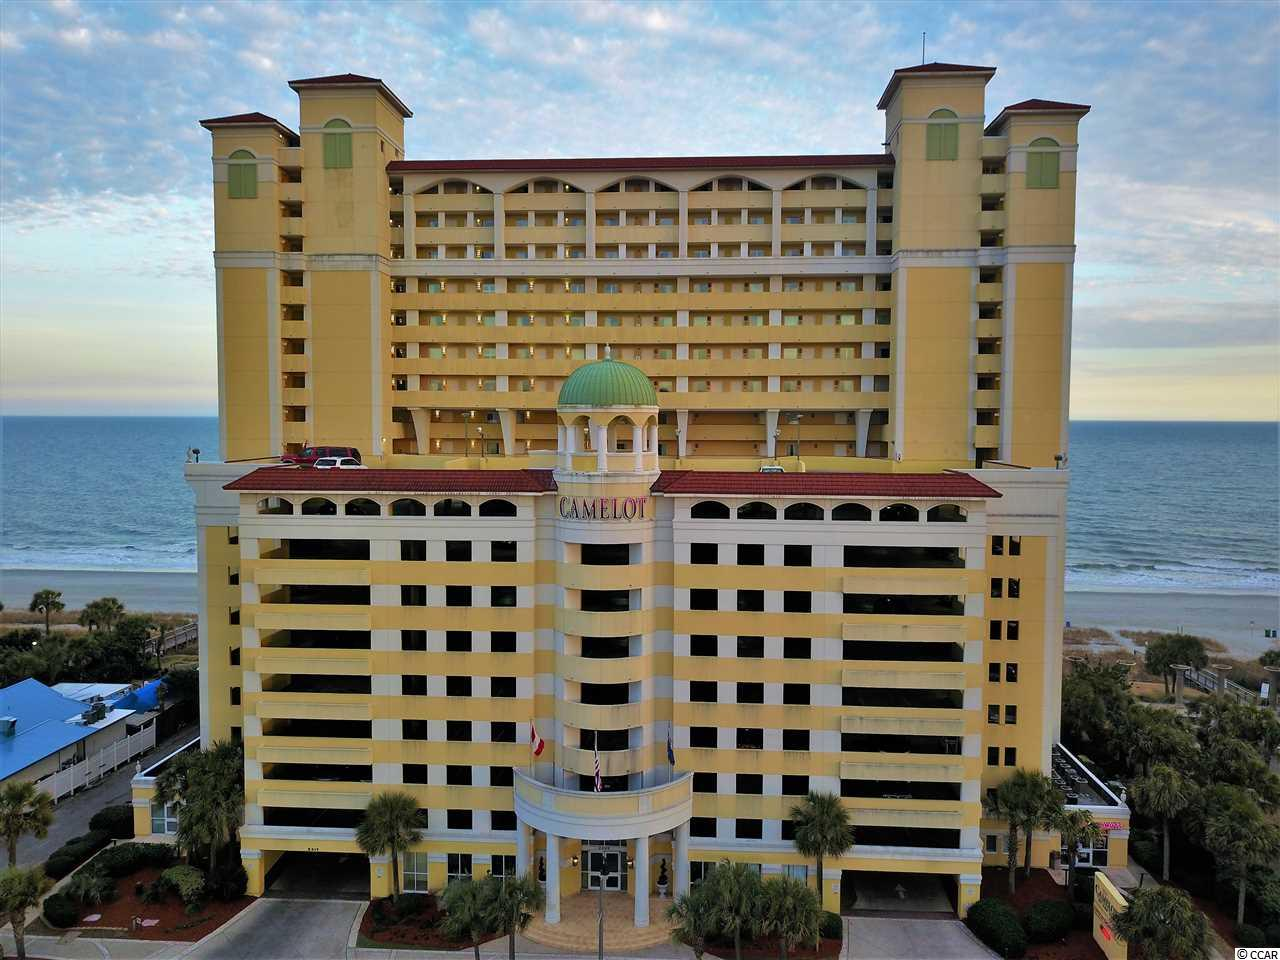 Ocean Front,End Unit Condo in Camelot By The Sea : Myrtle Beach South Carolina